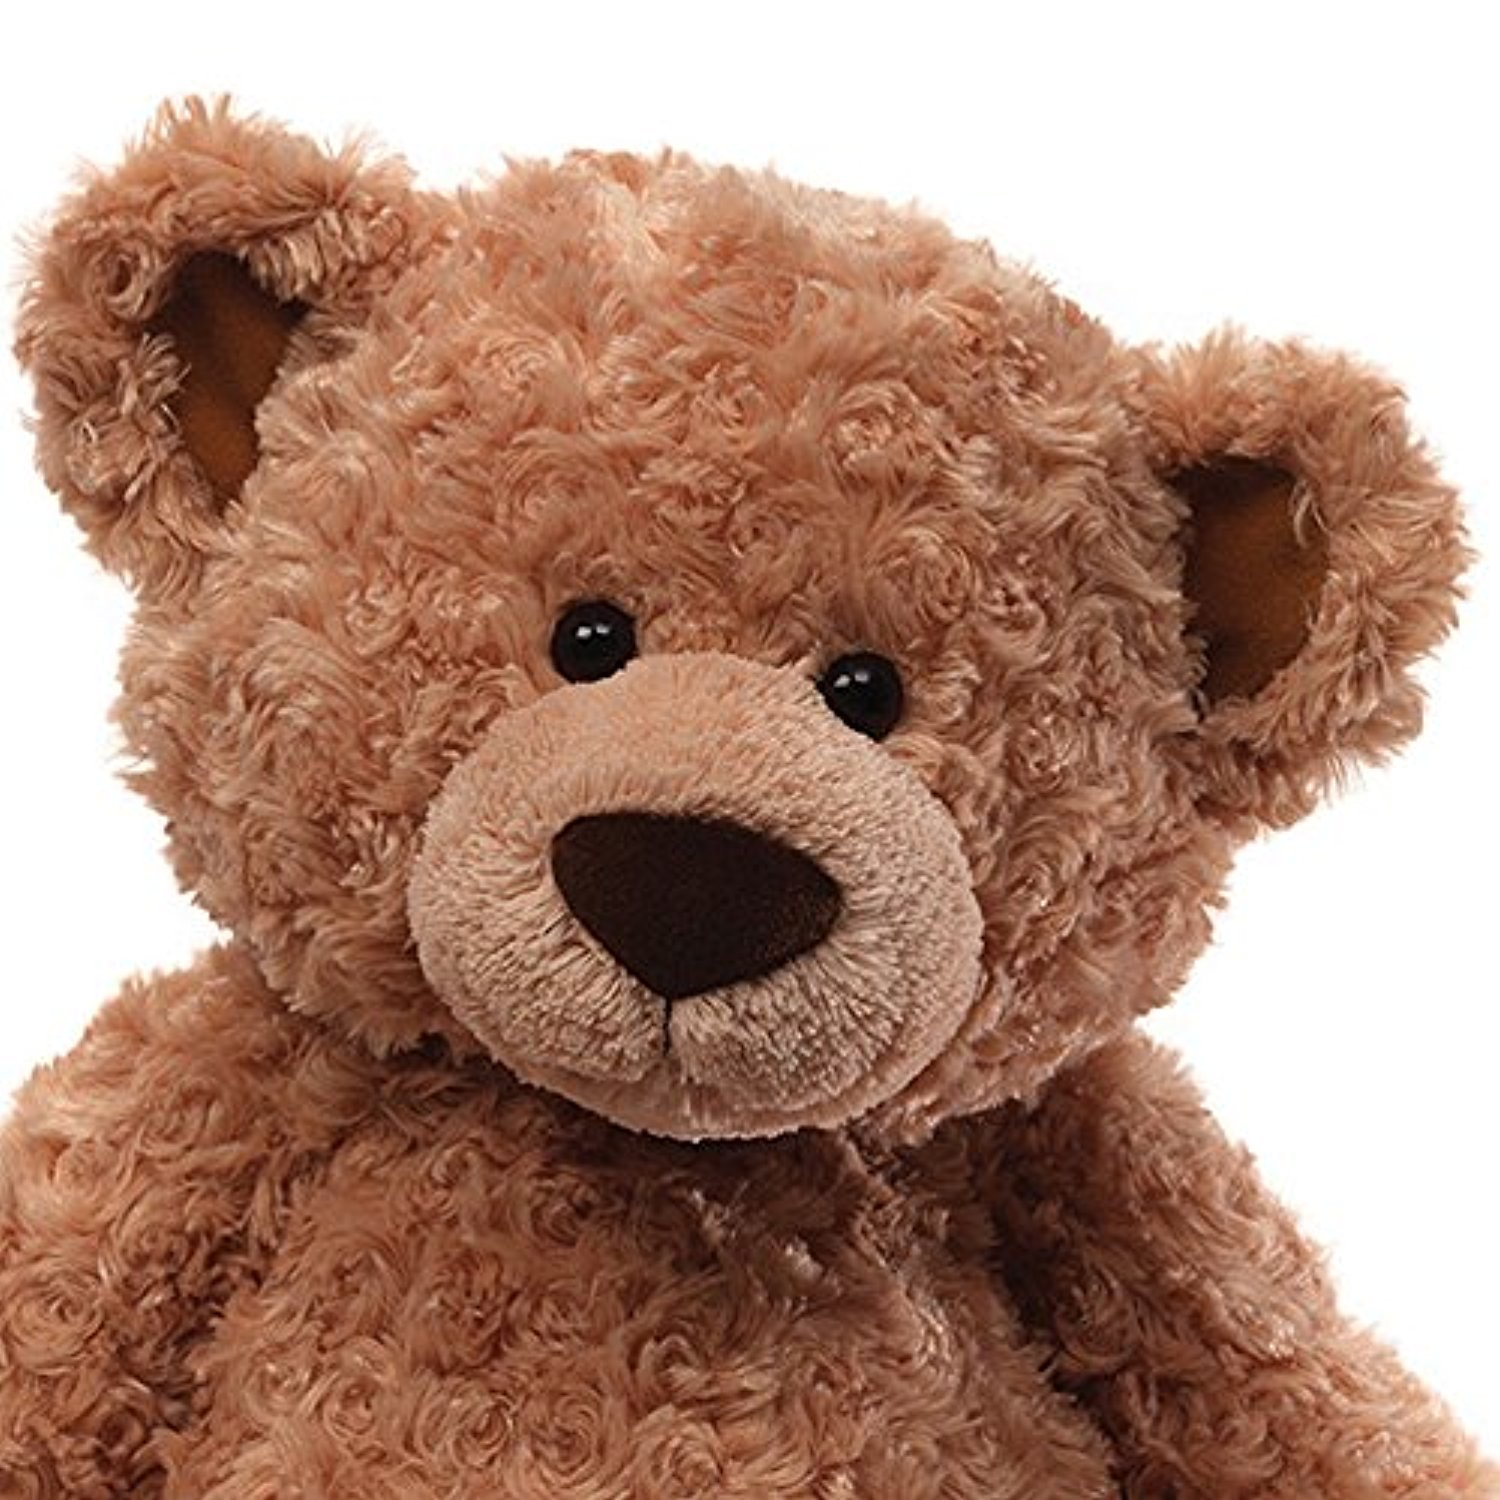 ◎送料込み◎ テディーベア Gund Maxie Teddy Bear Stuffed